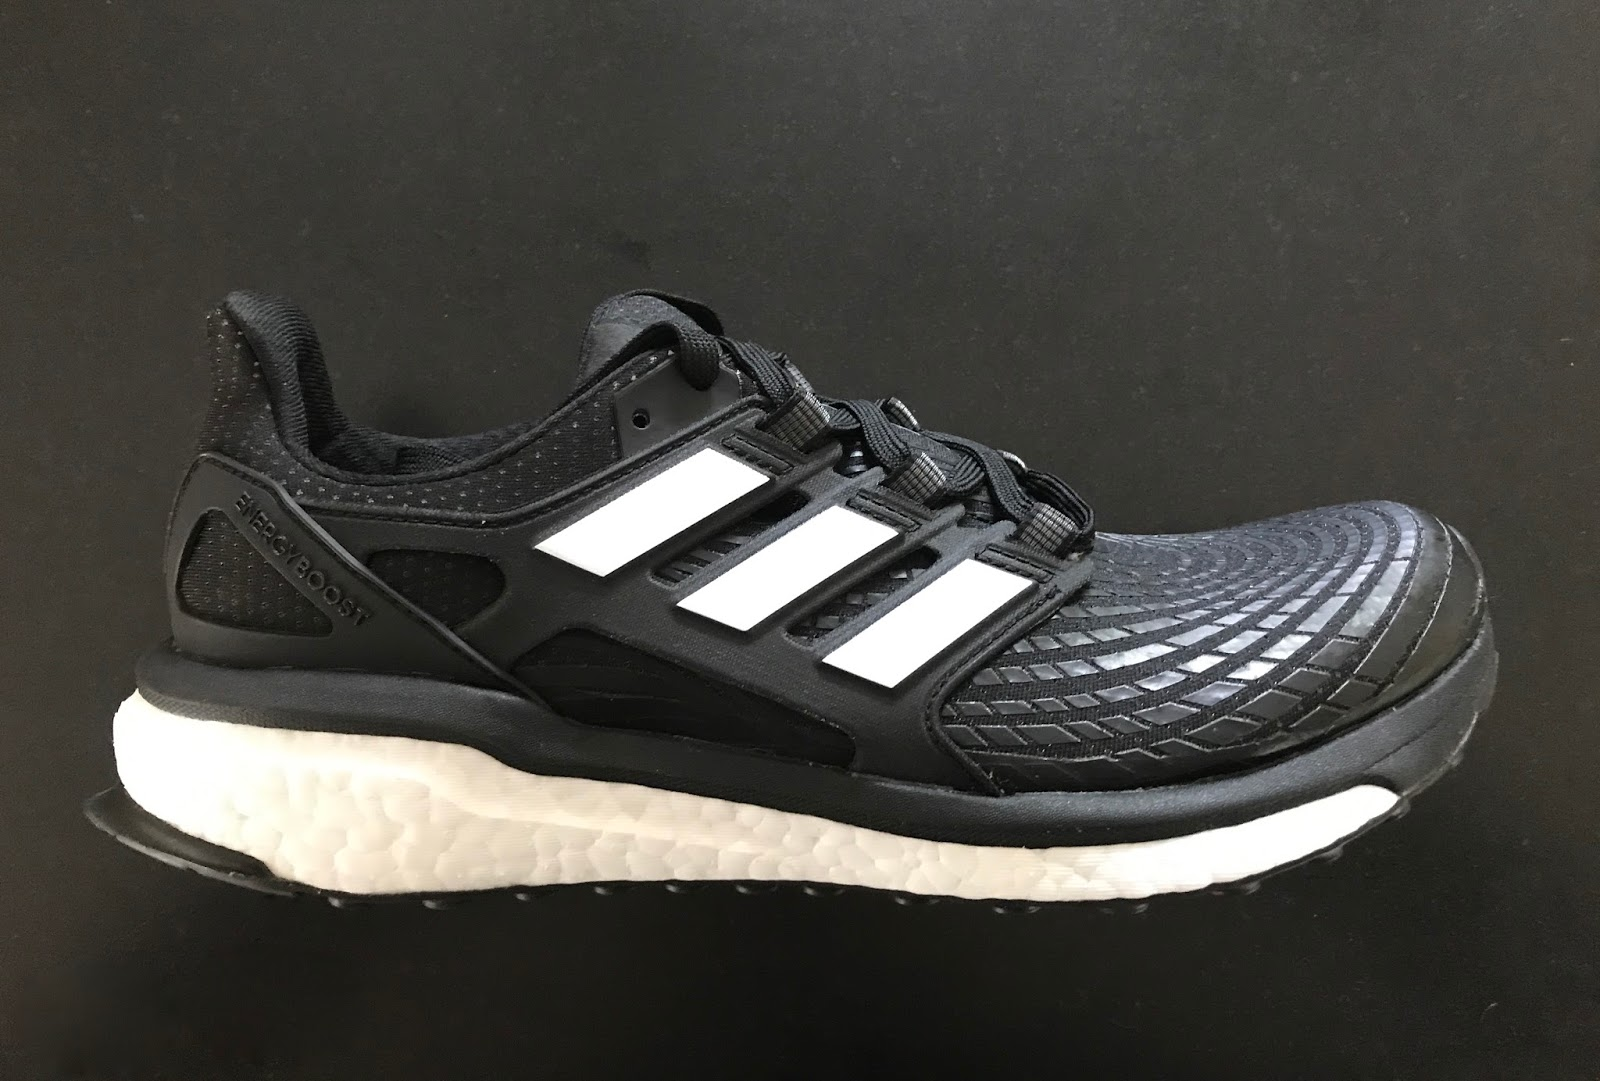 The adidas Energy Boost 2017 edition is a heavily cushioned premium neutral daily trainer. It is now called Energy Boost with no numbering after as ...